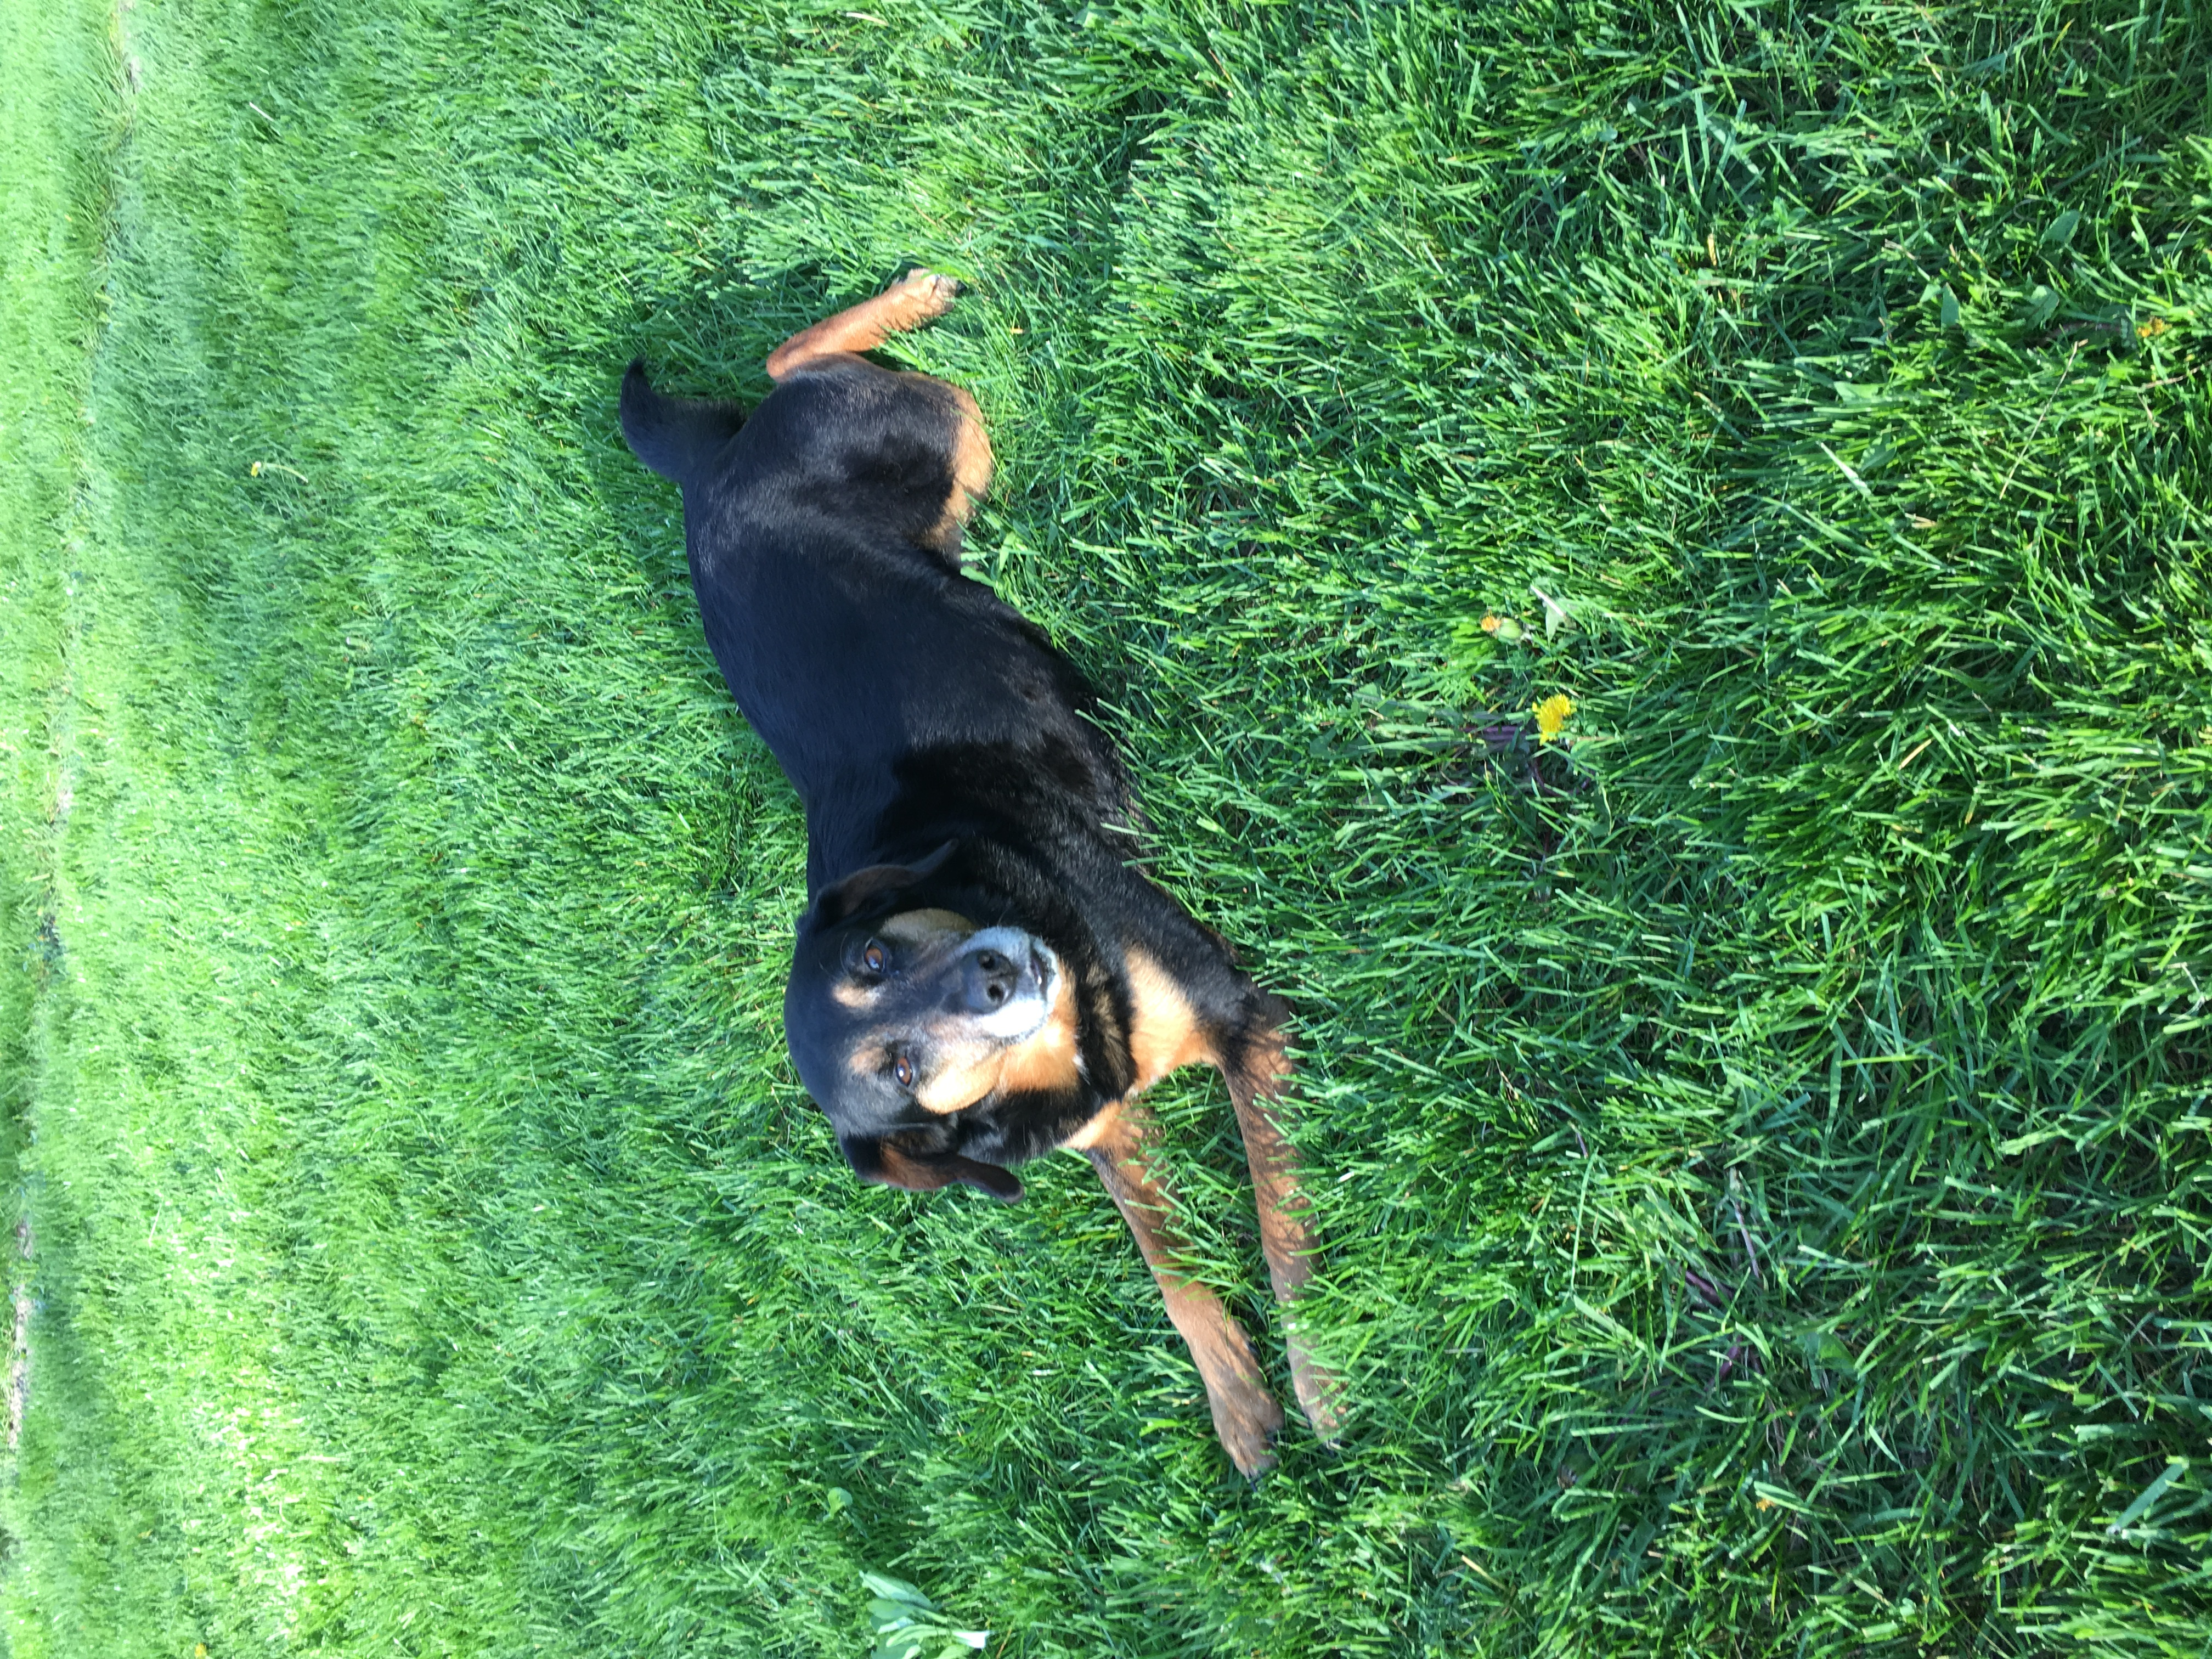 An older black and tan dog relaxes in the grass looking at the camera